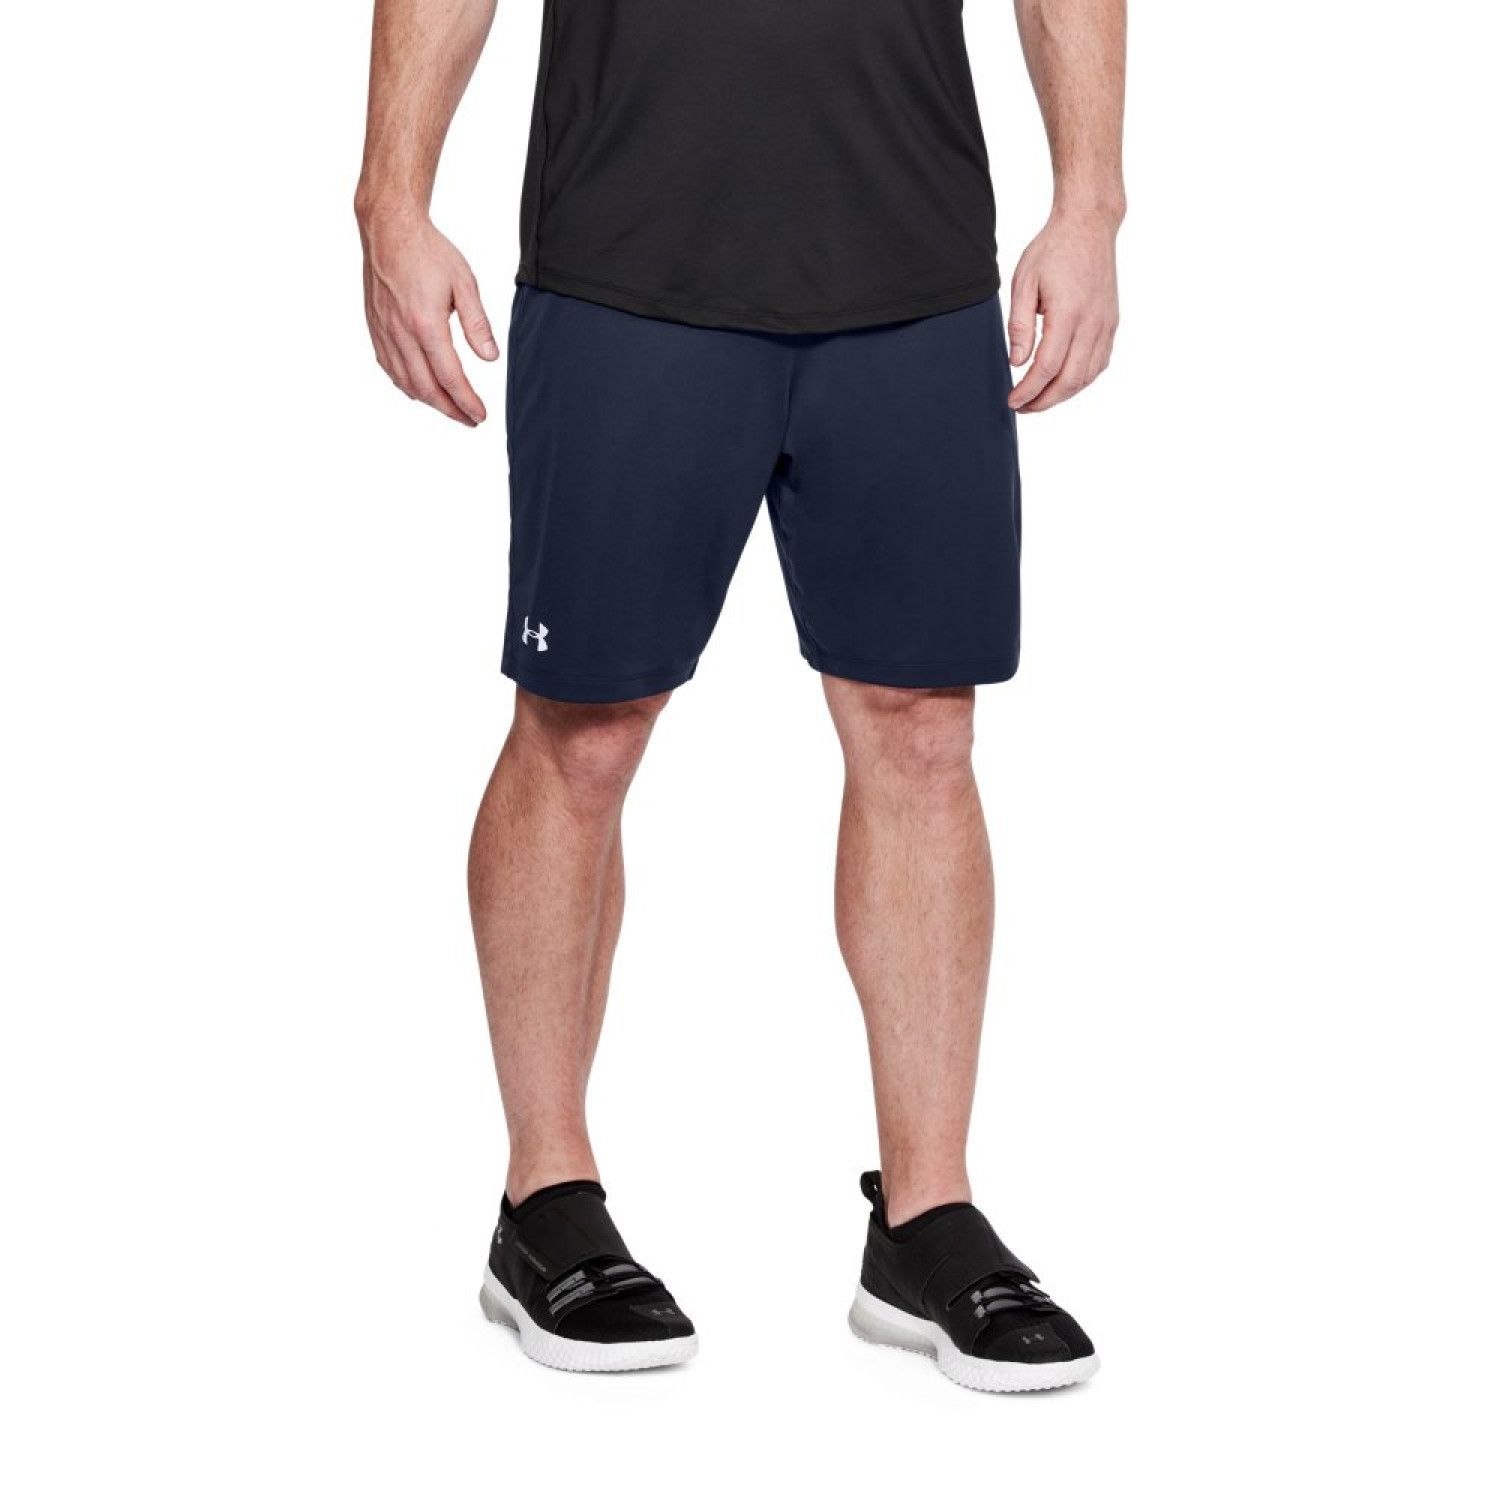 UA M's Team Raid Short 2.0-NVY (MD) 1305792-410